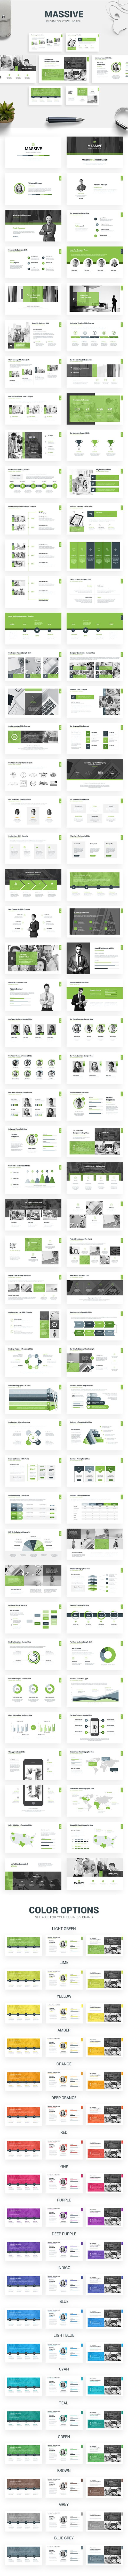 Massive  Business Presentation Template — Powerpoint PPT #typography #layout • Available here ➝ https://graphicriver.net/item/massive-business-presentation-template/20752308?ref=pxcr